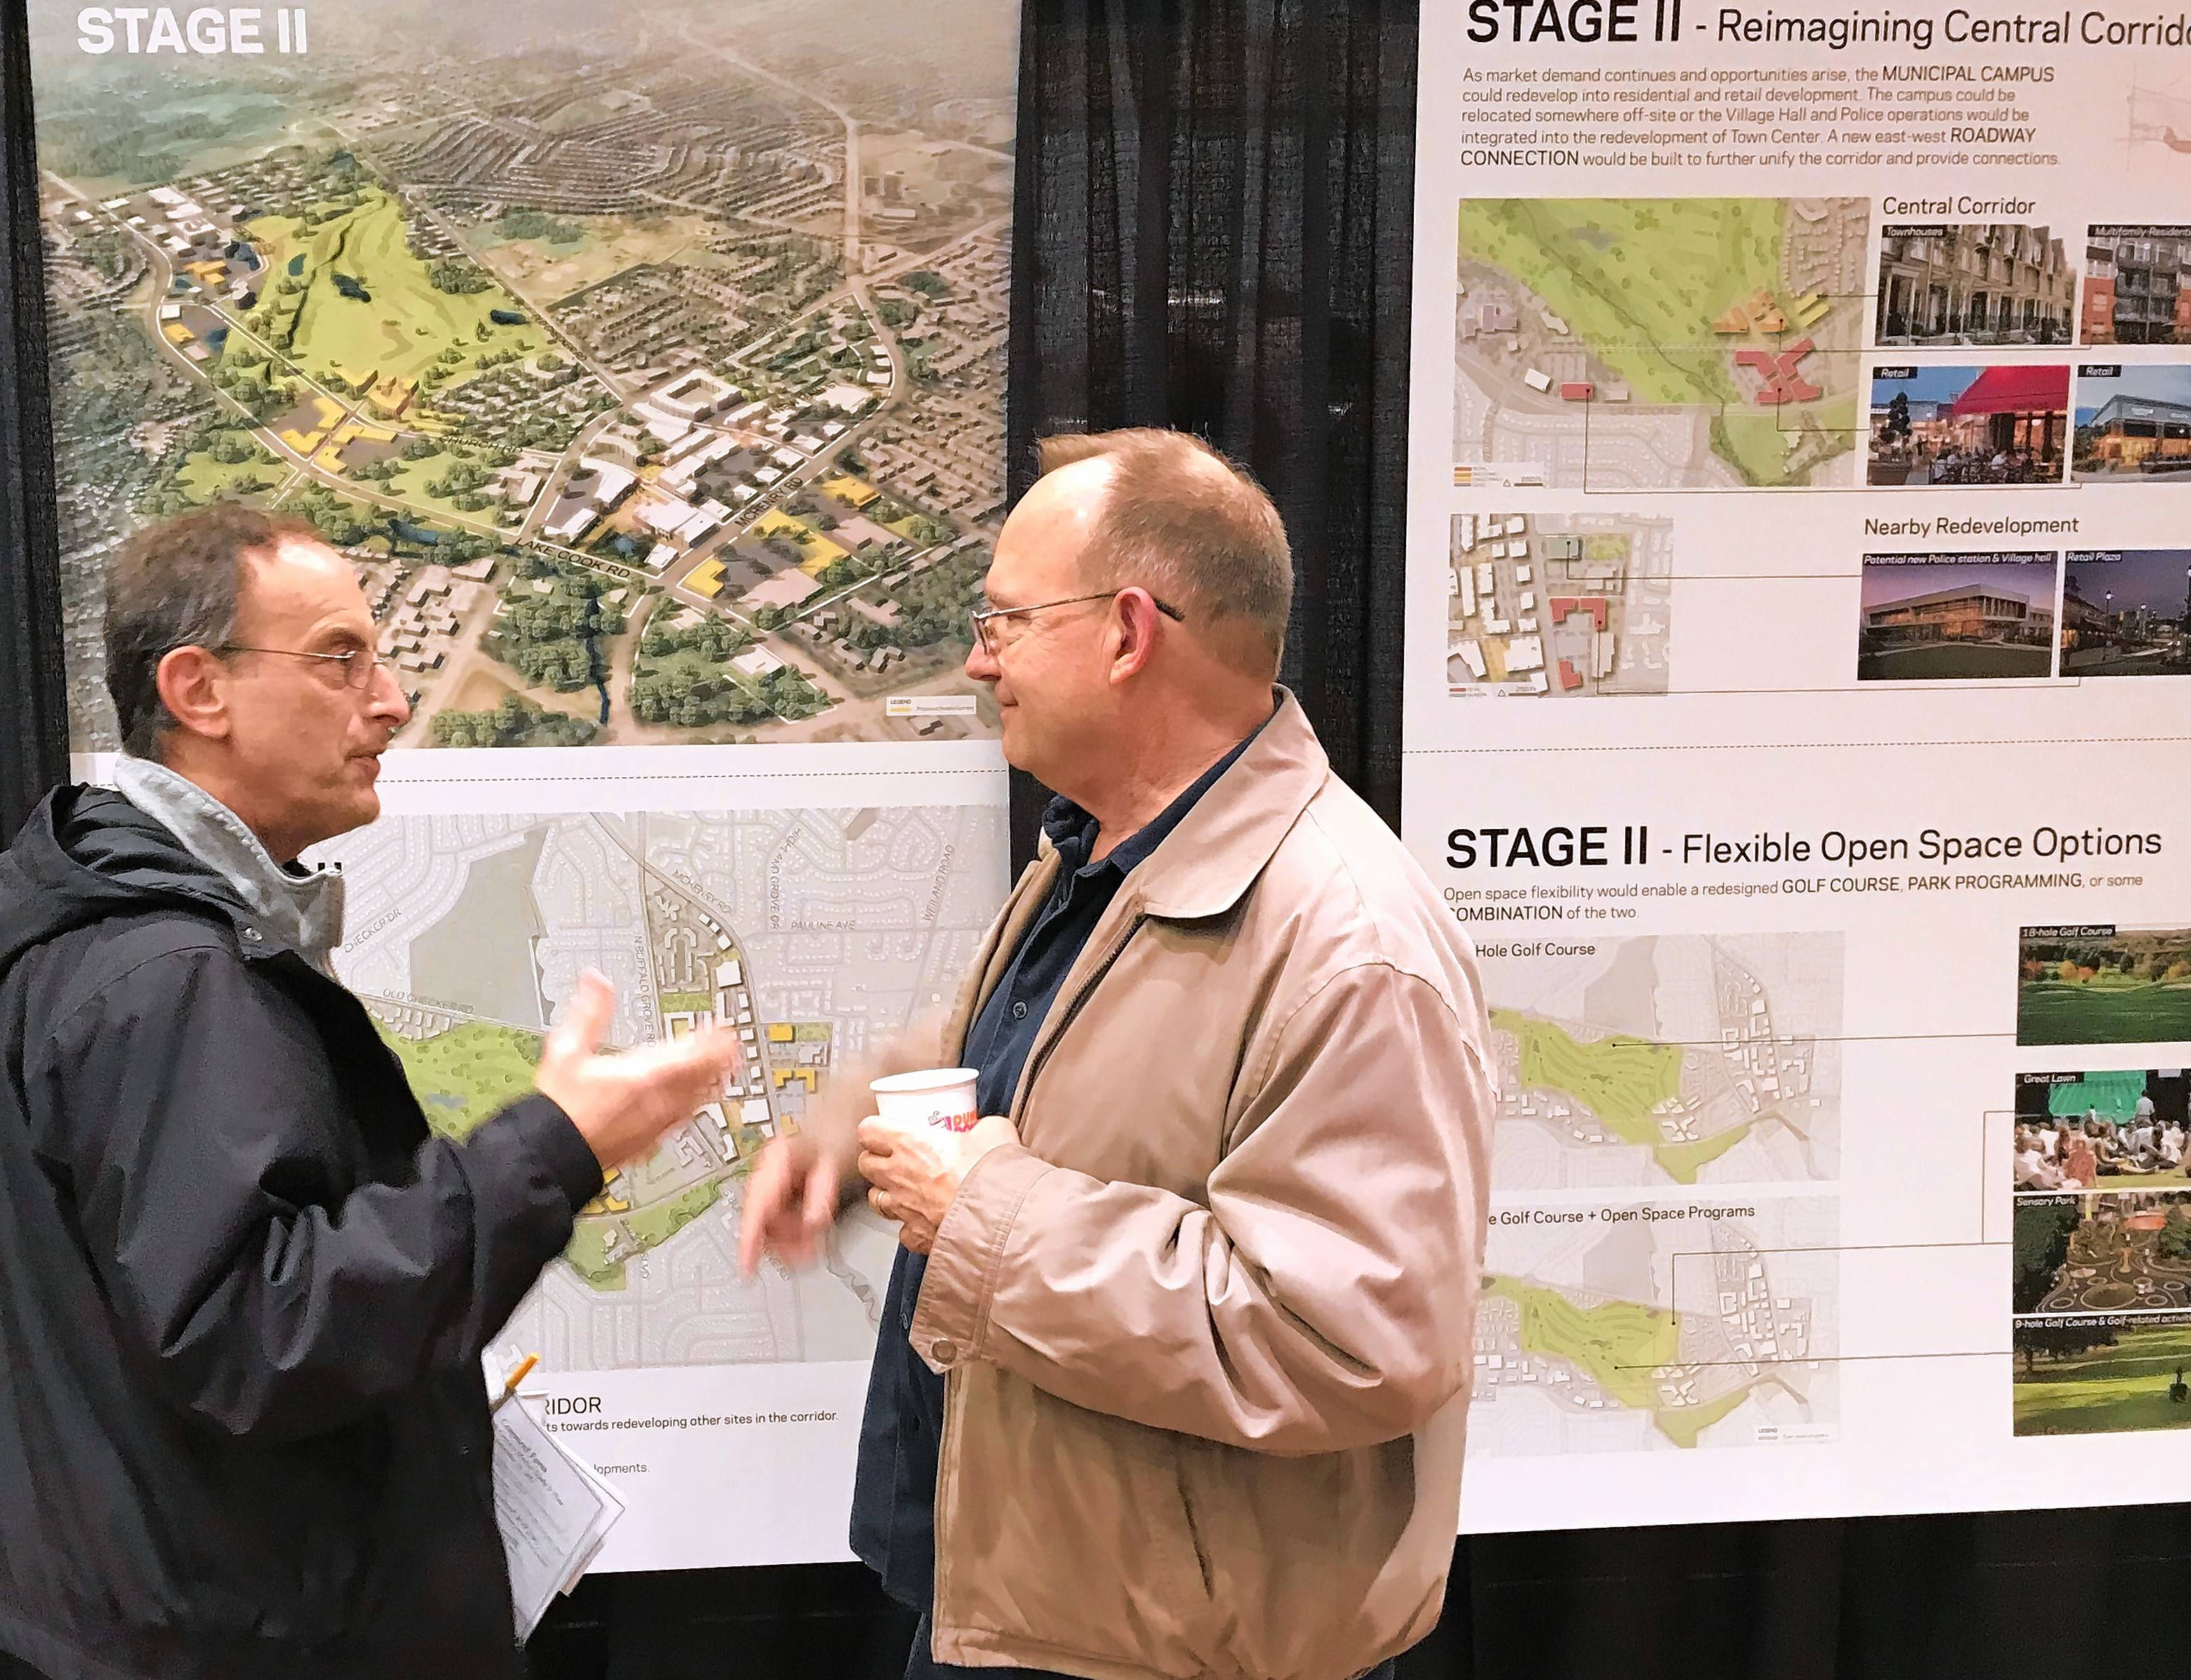 Jerry Meyerhoff, left, and Skip Glatt discuss the latest vision for the Lake-Cook Road corridor from Buffalo Grove planners and consultants, which was unveiled at a meeting Thursday.